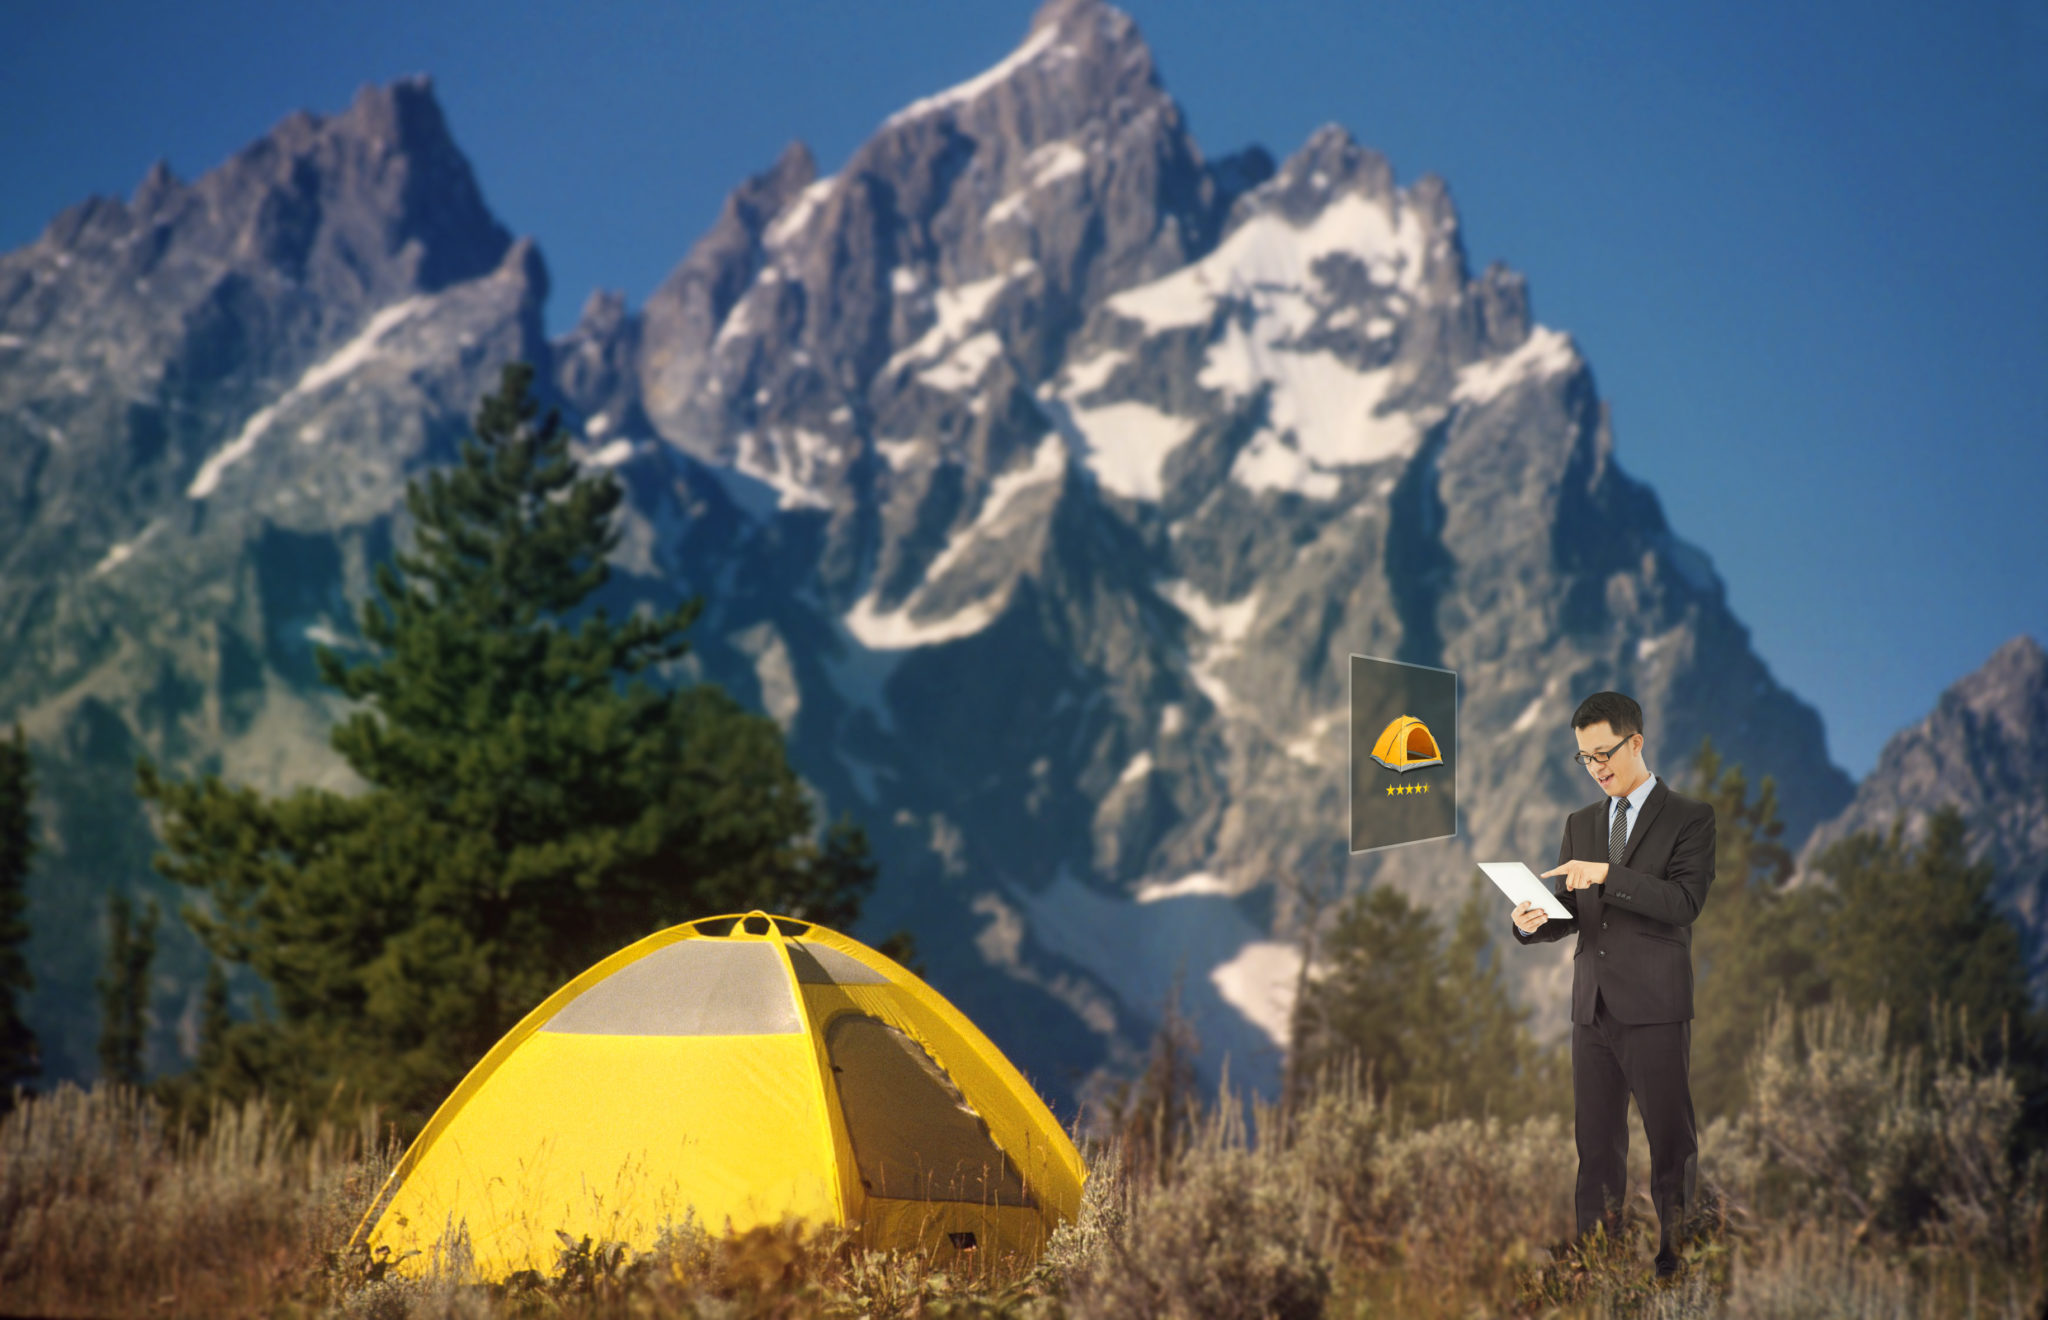 Buying tent in virtual reality